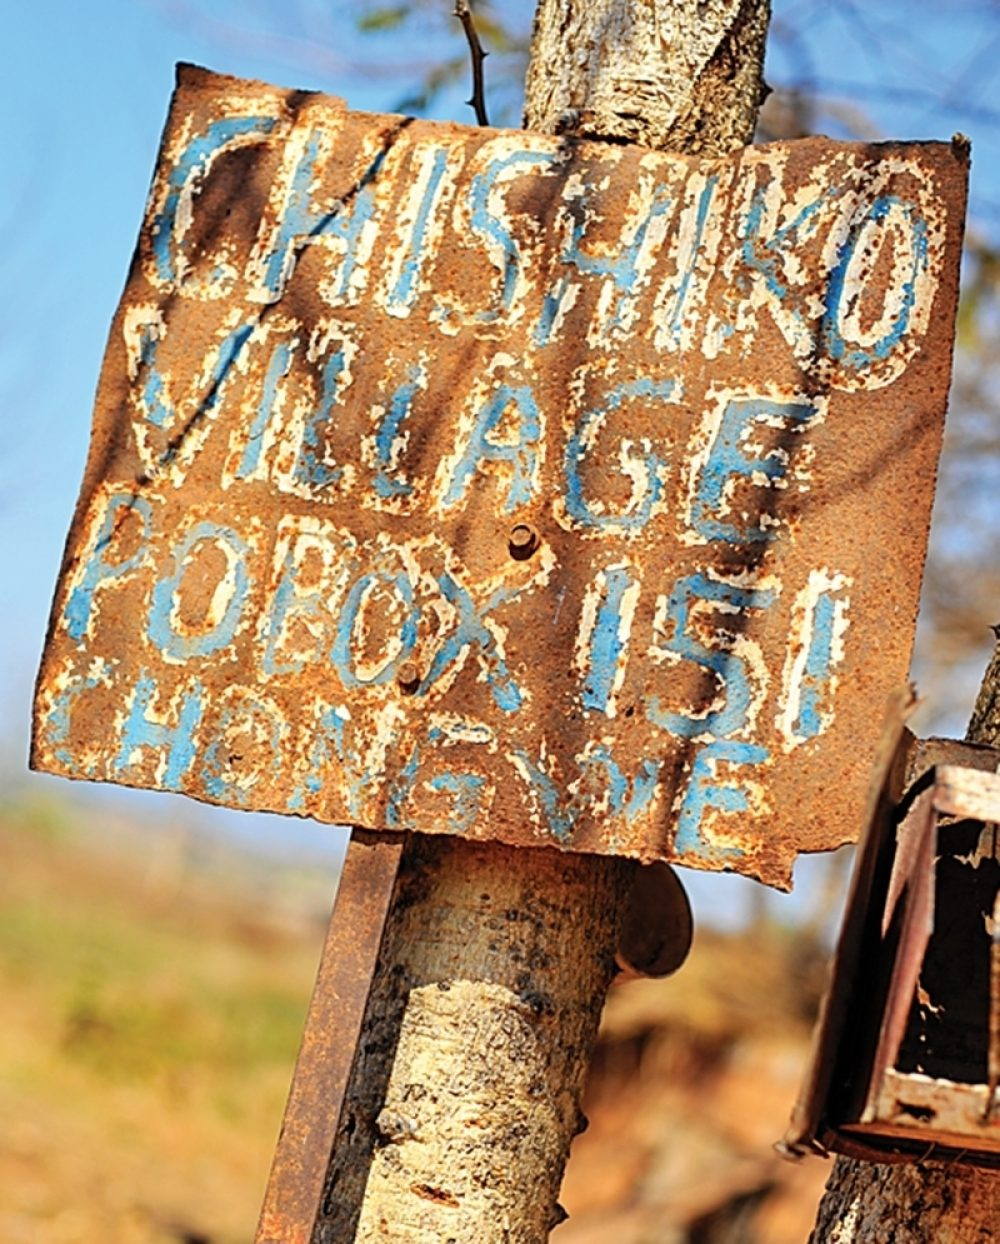 A postal sign for the village of Chishiko in Zambia